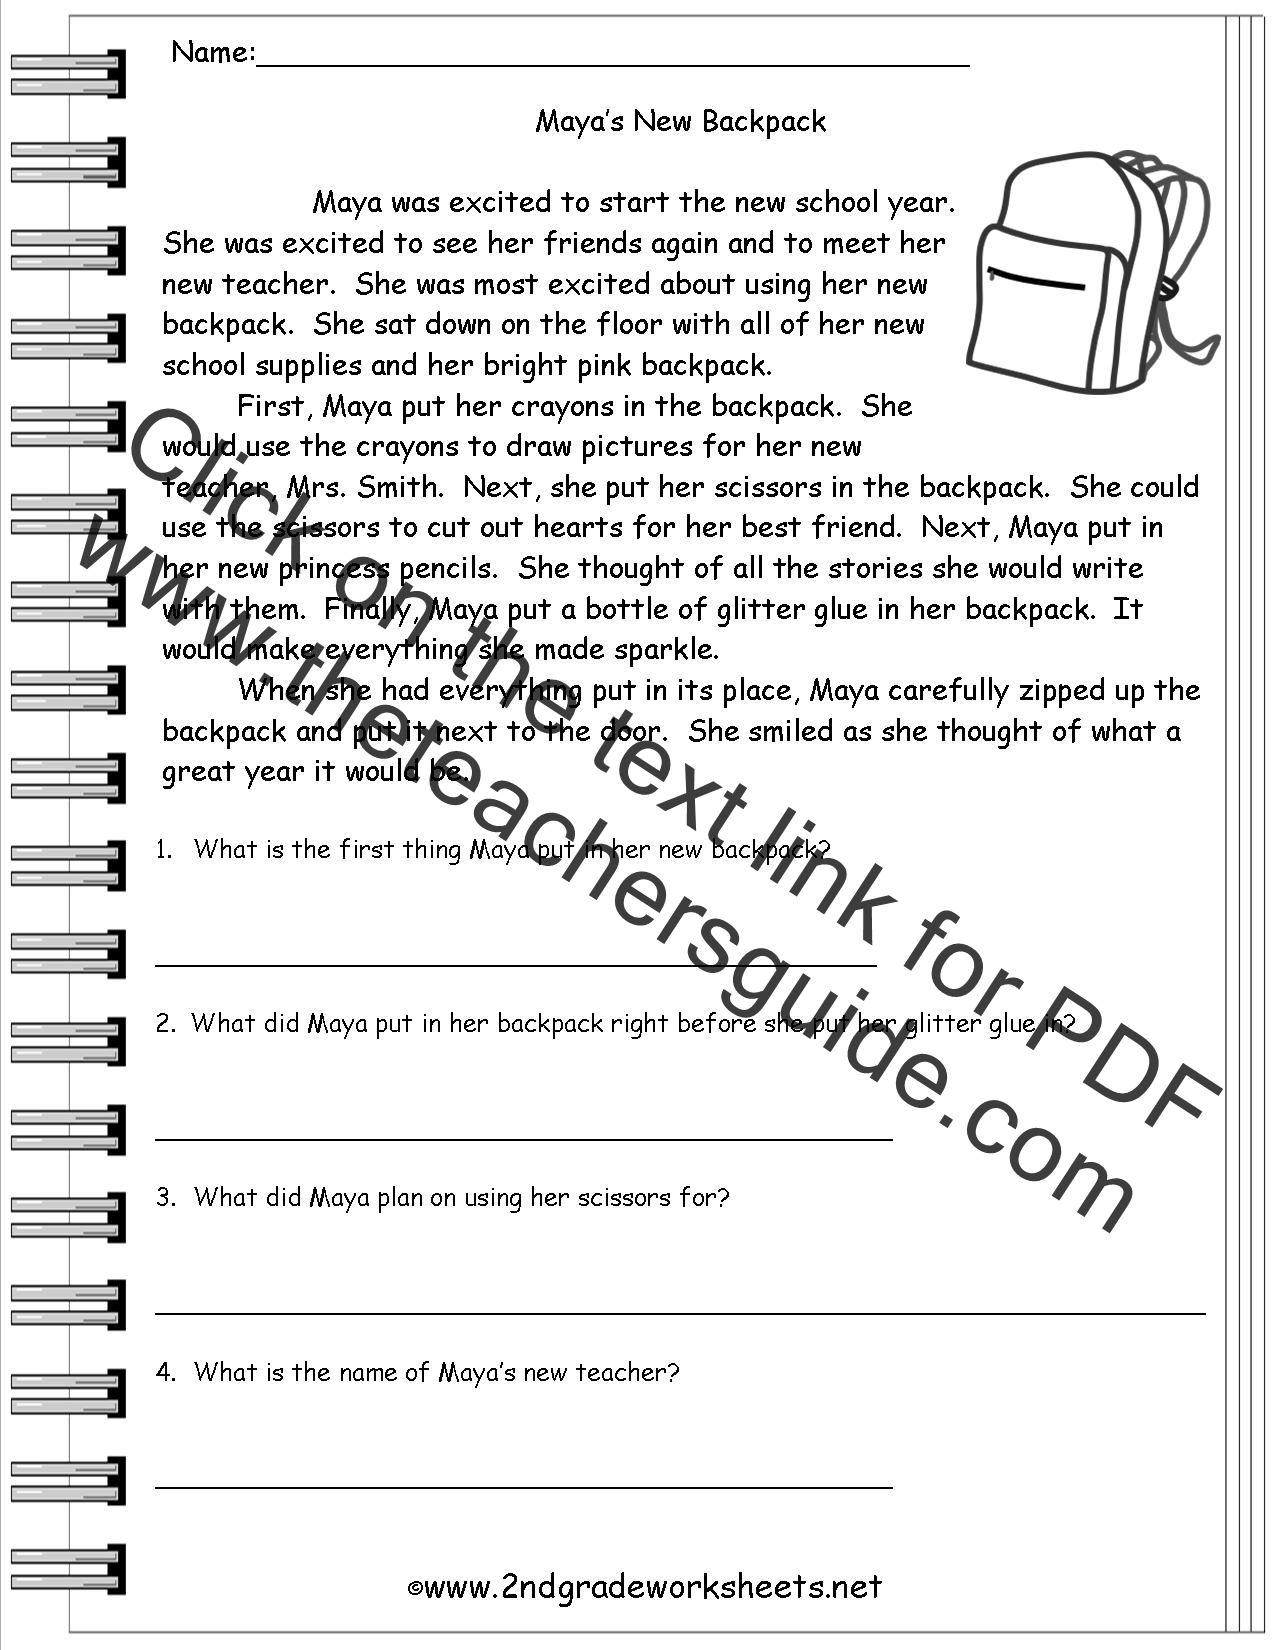 worksheet Compare And Contrast Worksheets 4th Grade Free worksheet reading comprehension worksheets 3rd grade multiple for third free gr de re d g prehensi w ksheets choice